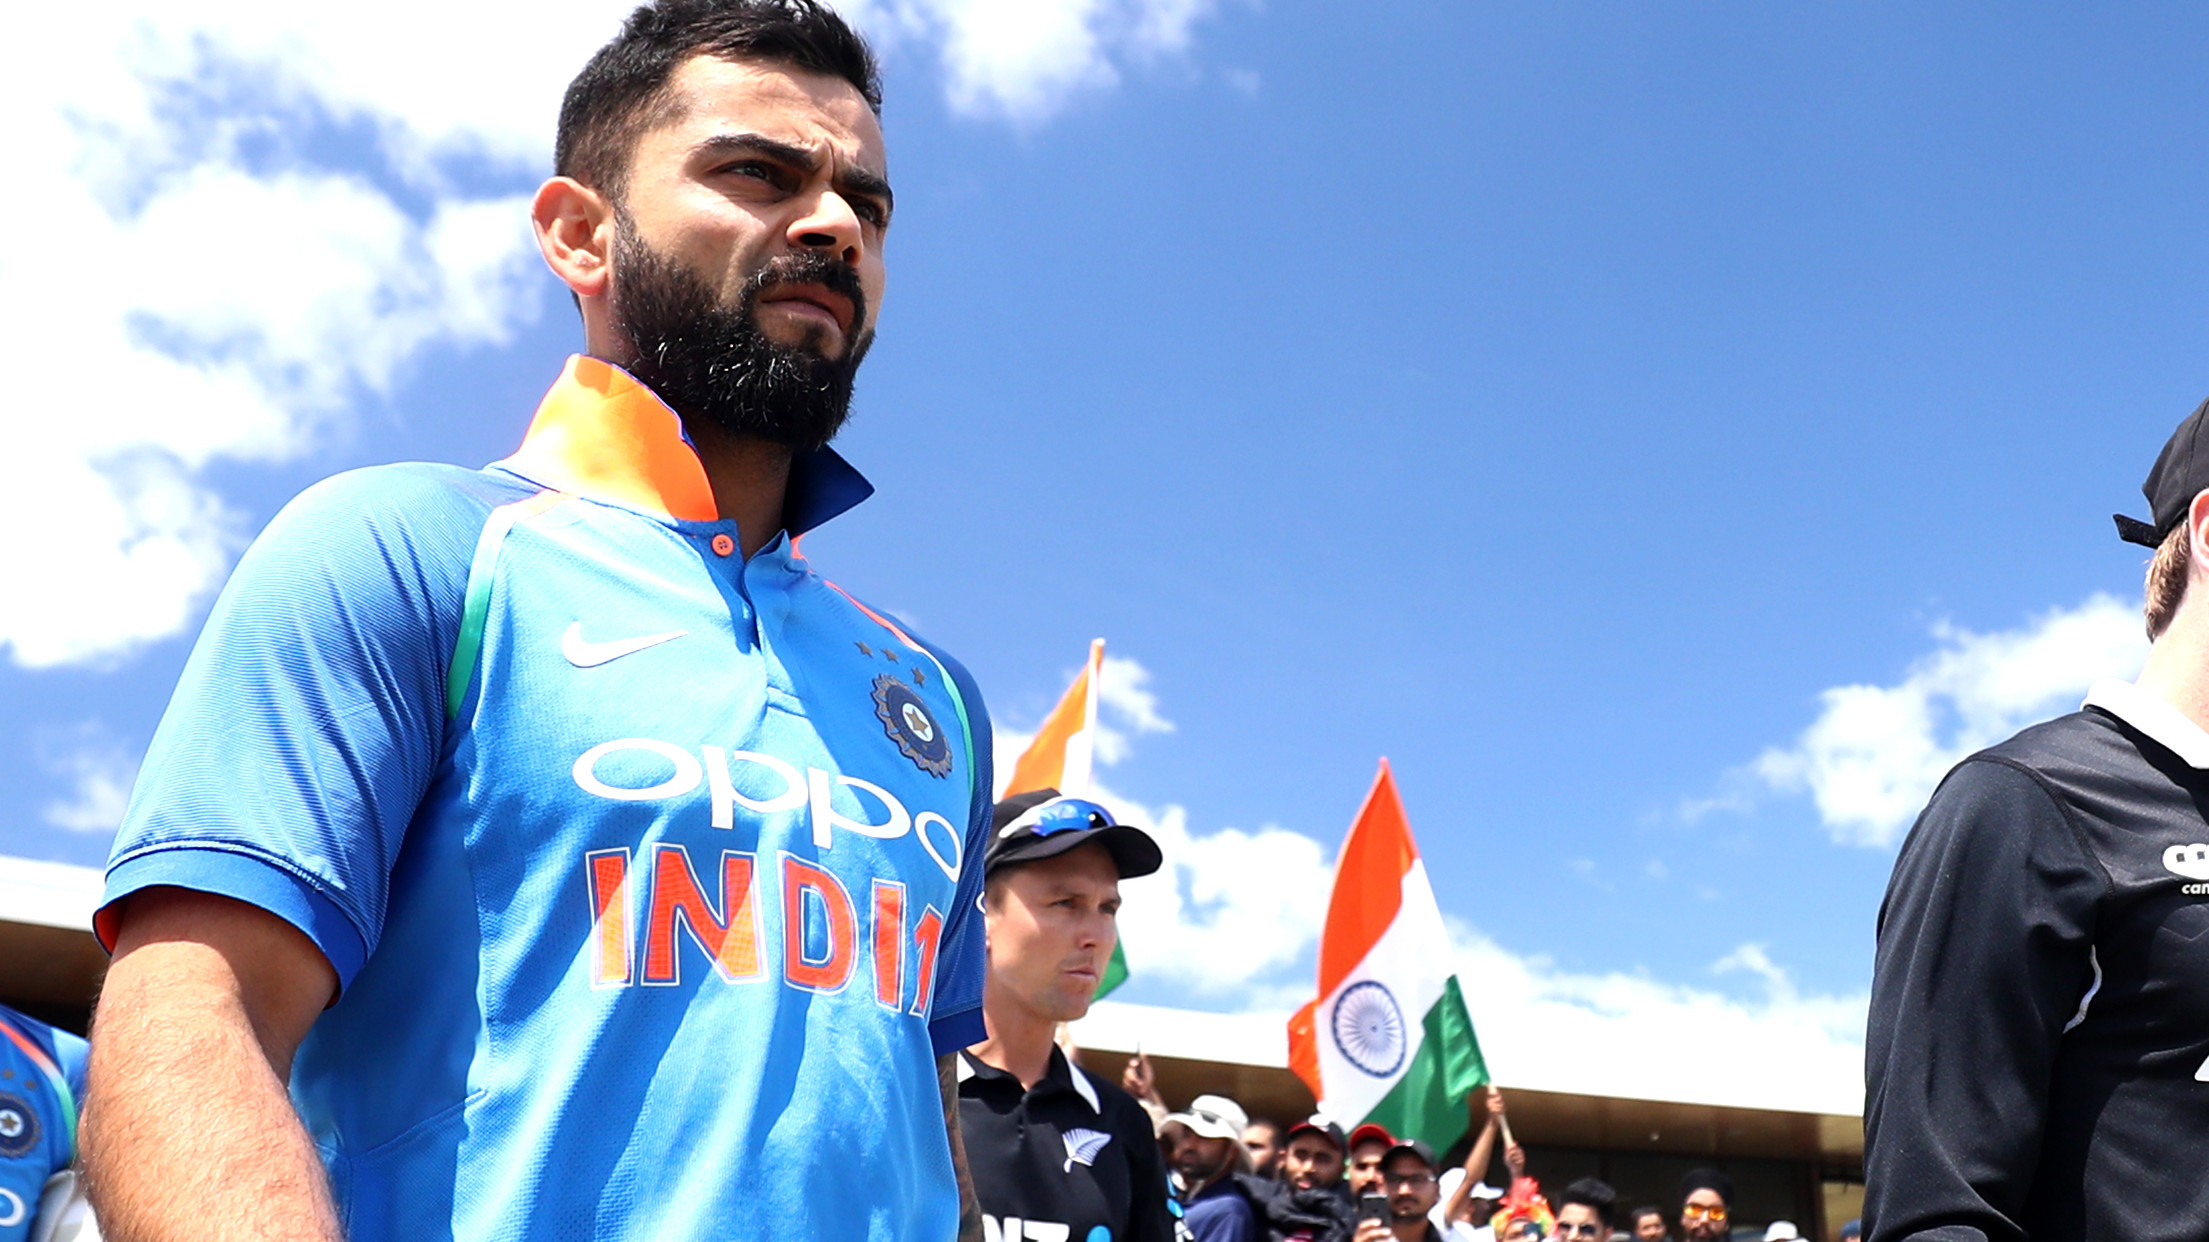 NZ v IND 2019: Virat Kohli tweets Republic Day message for his fans after 2nd ODI win